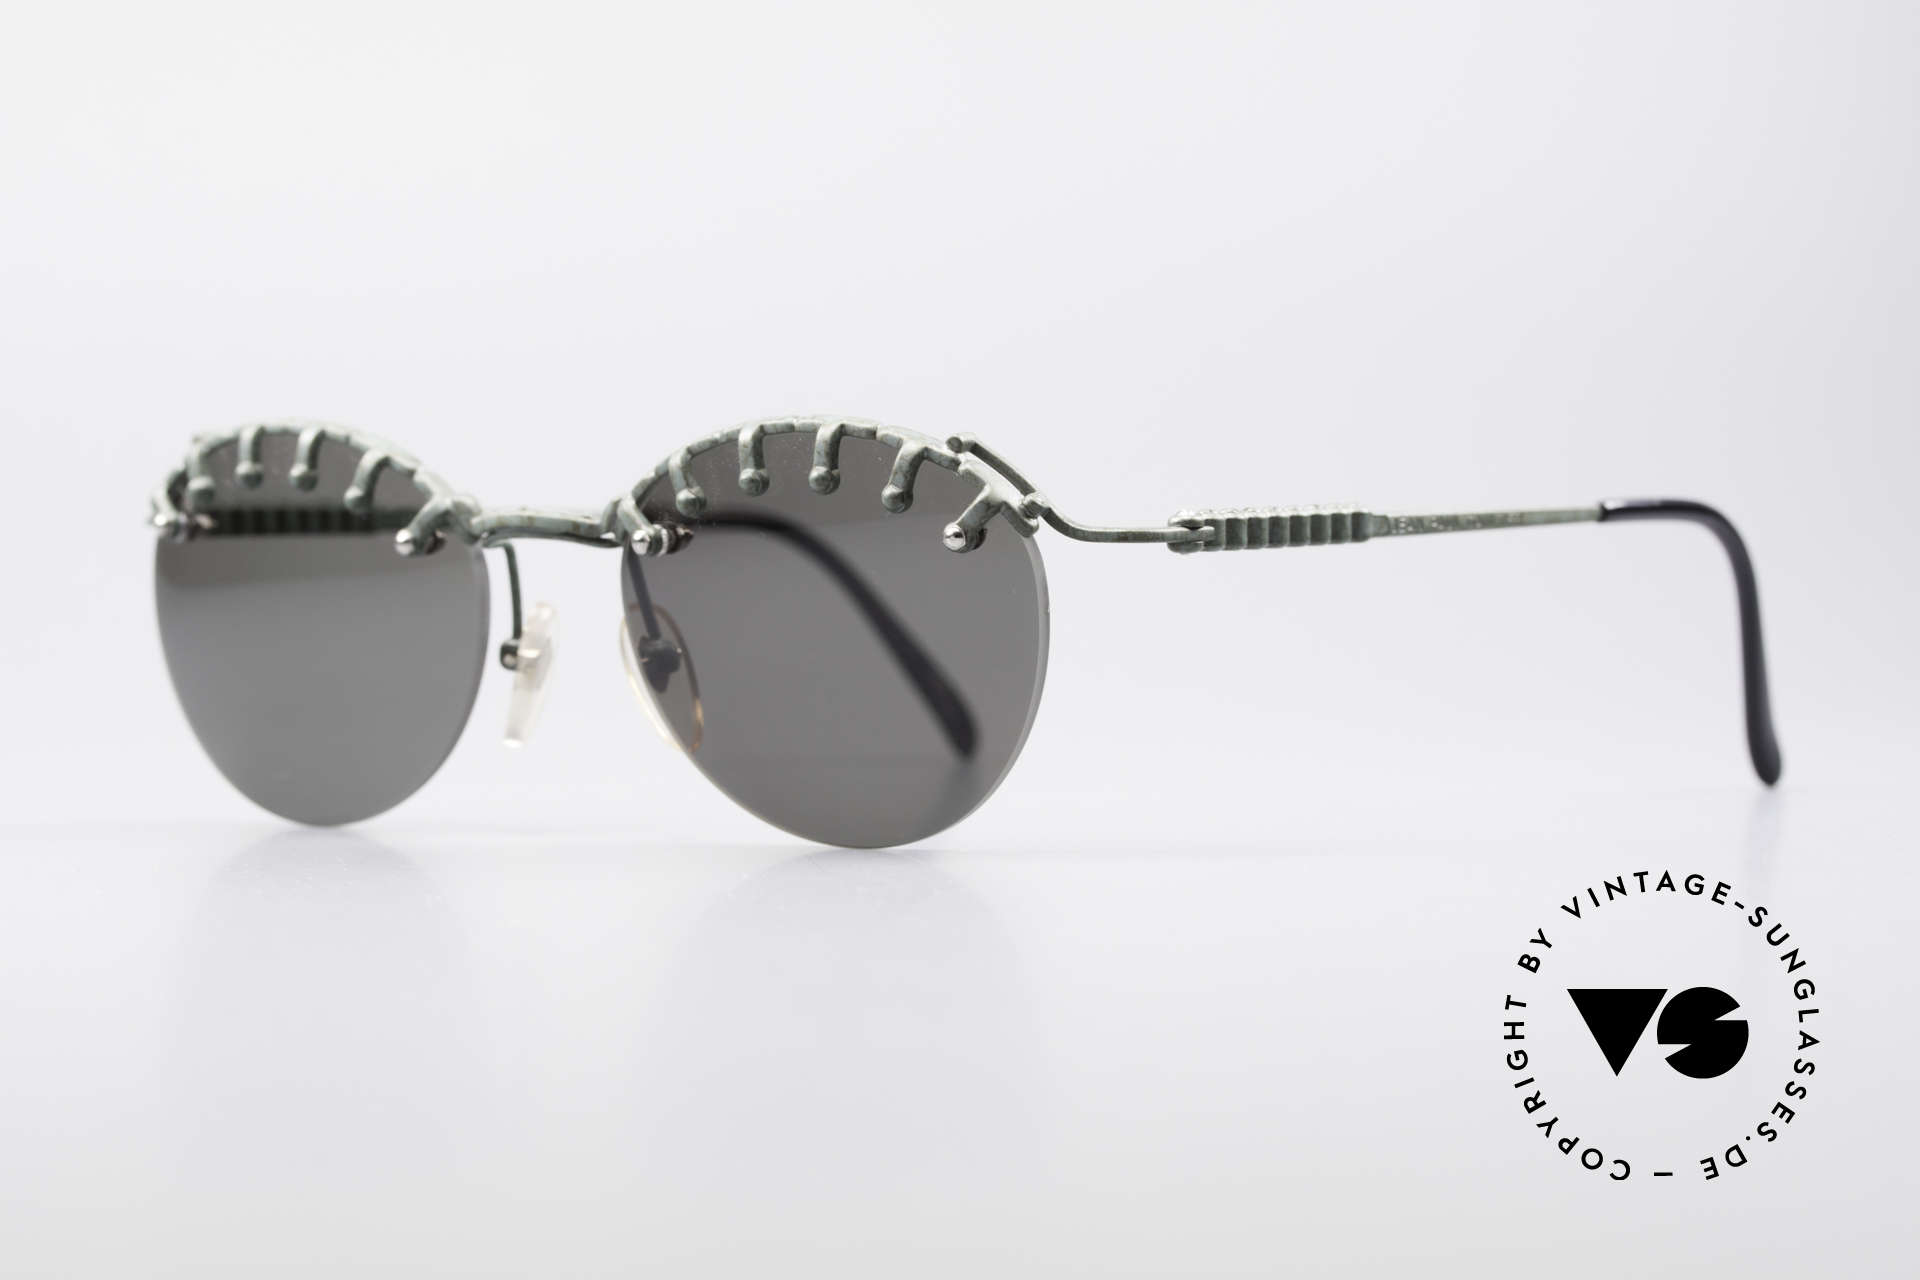 Jean Paul Gaultier 56-5103 Rihanna Vintage Glasses, a true EYE-CATCHER in high-end quality from 1997, Made for Women